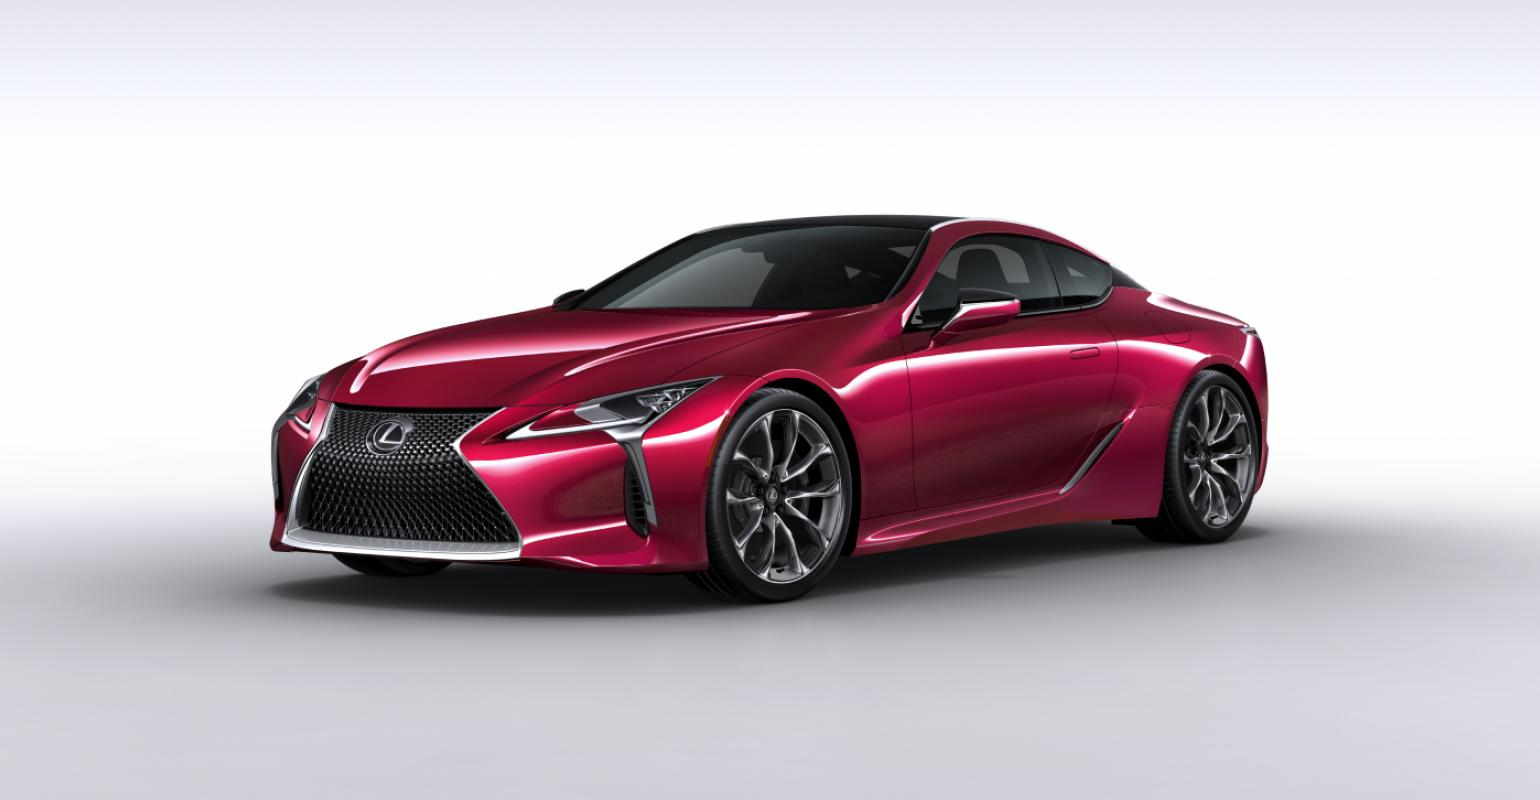 lexus planning to sell 6,600 lc coupes annually, conquest other